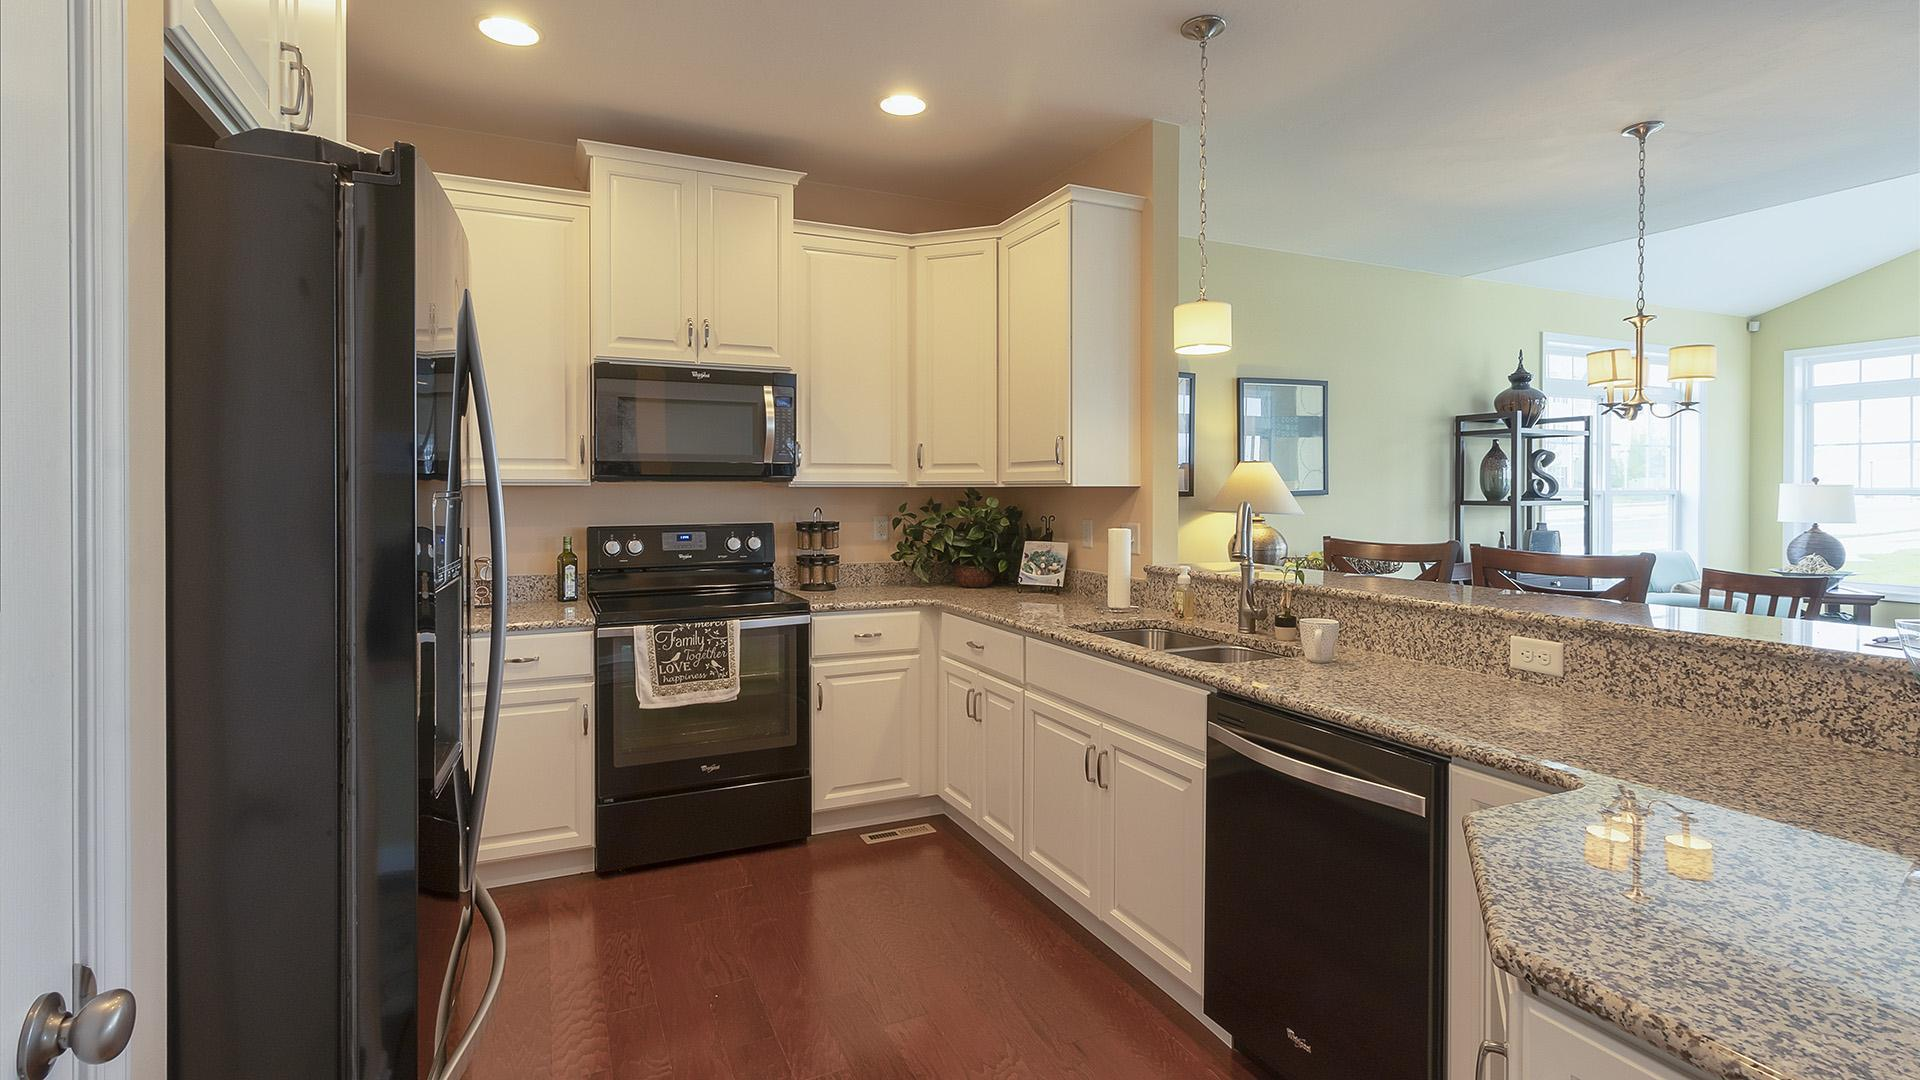 Kitchen featured in the Crestmont By S & A Homes in State College, PA